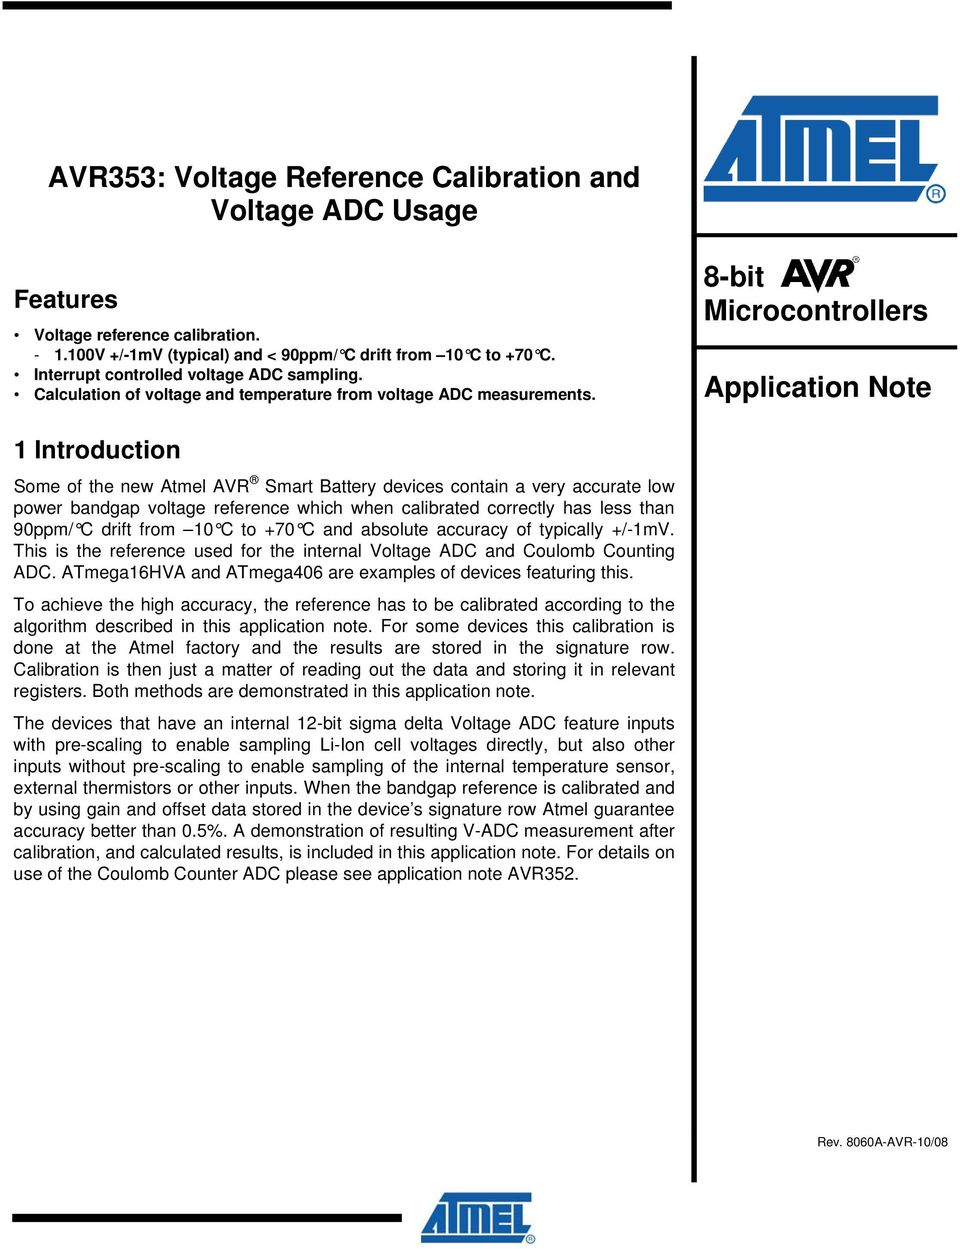 8-bit Microcontrollers Application Note 1 Introduction Some of the new Atmel AVR Smart Battery devices contain a very accurate low power bandgap voltage reference which when calibrated correctly has